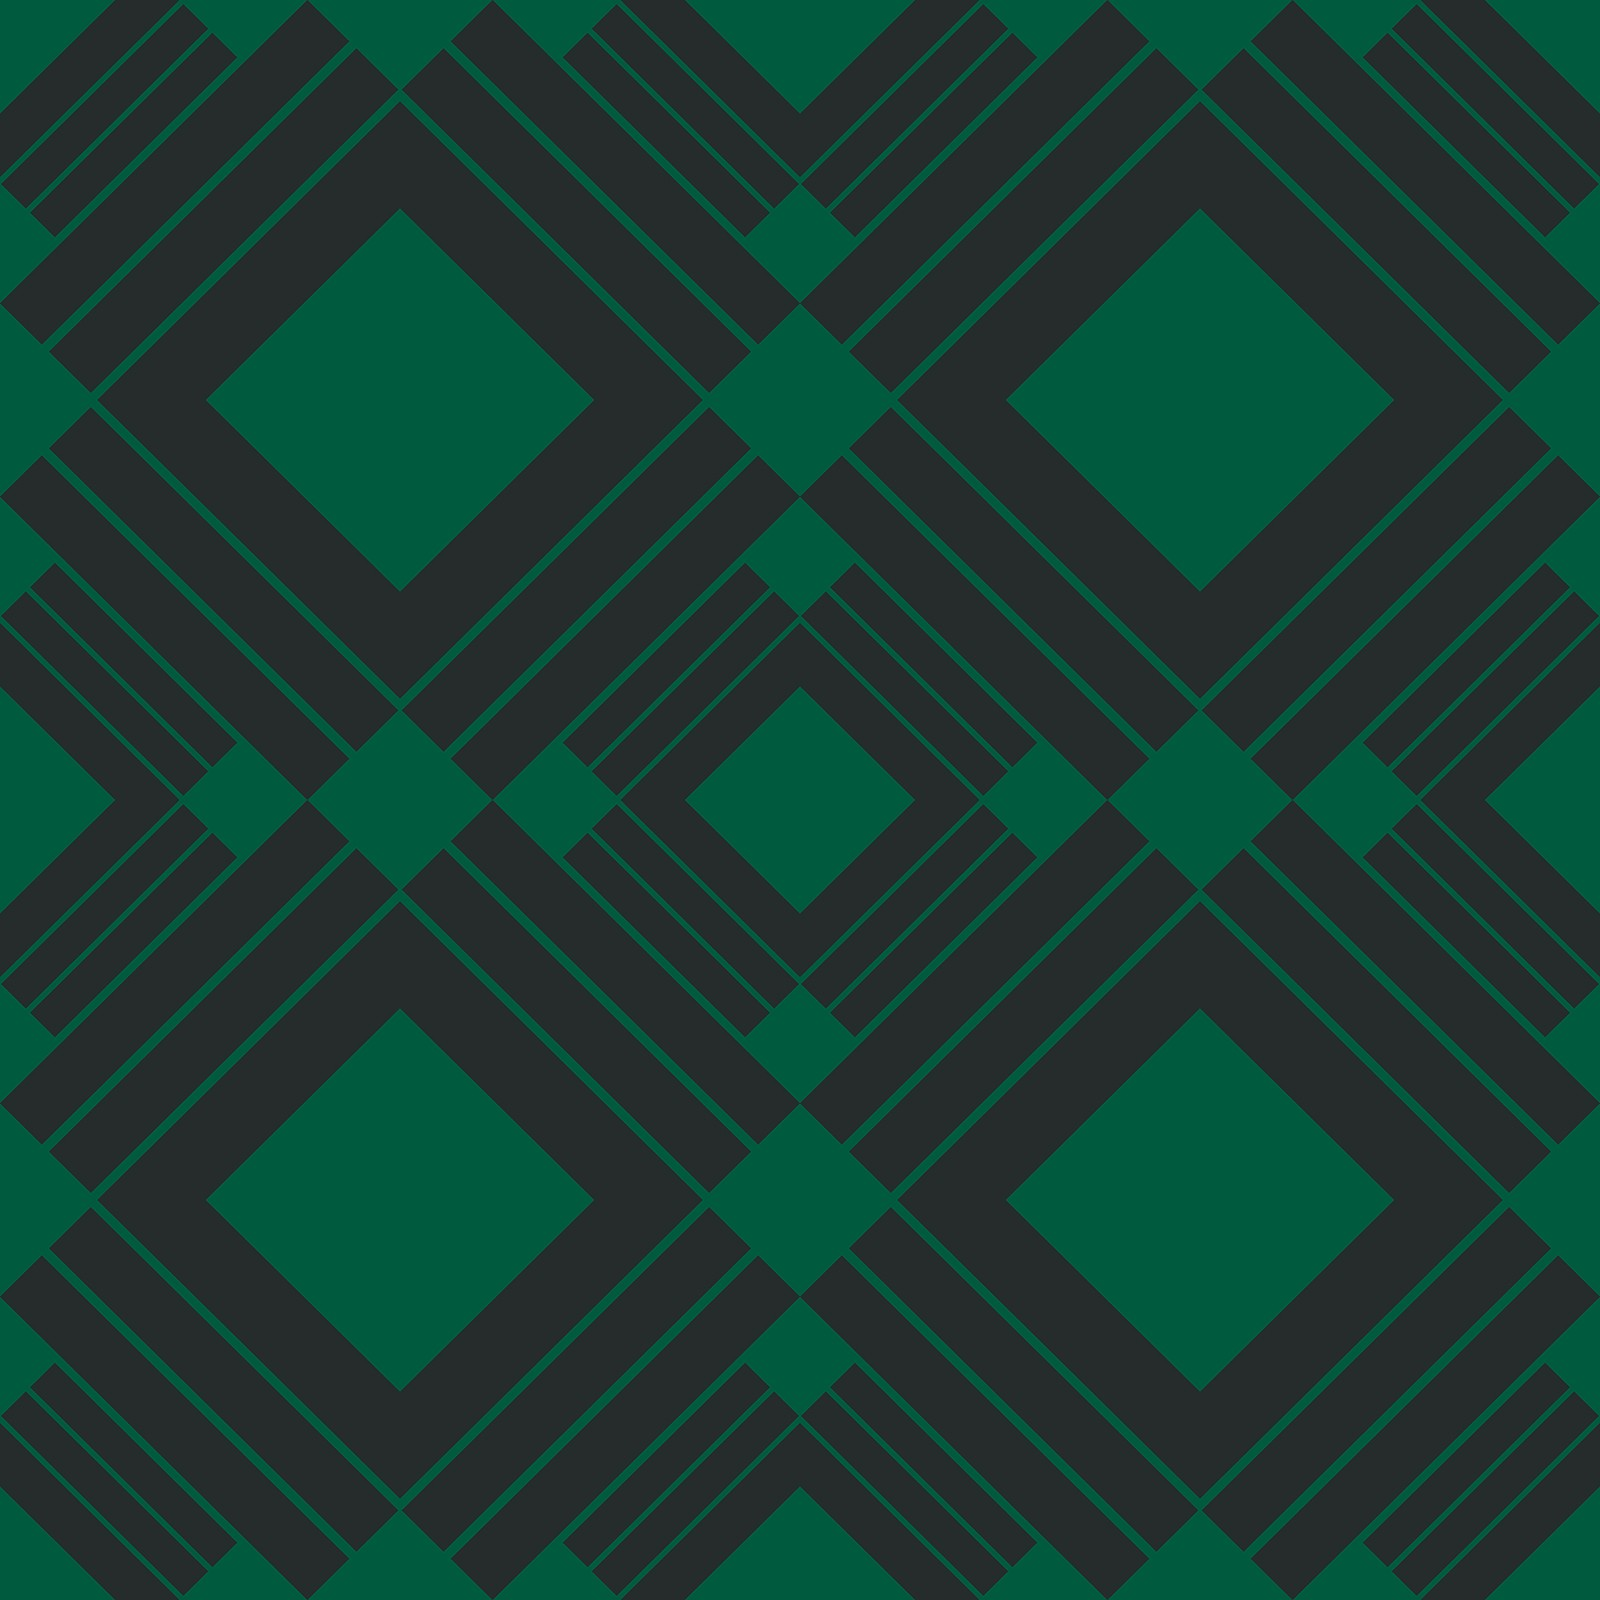 Temporary Wallpaper   Diamond   Emerald Green 1600x1600